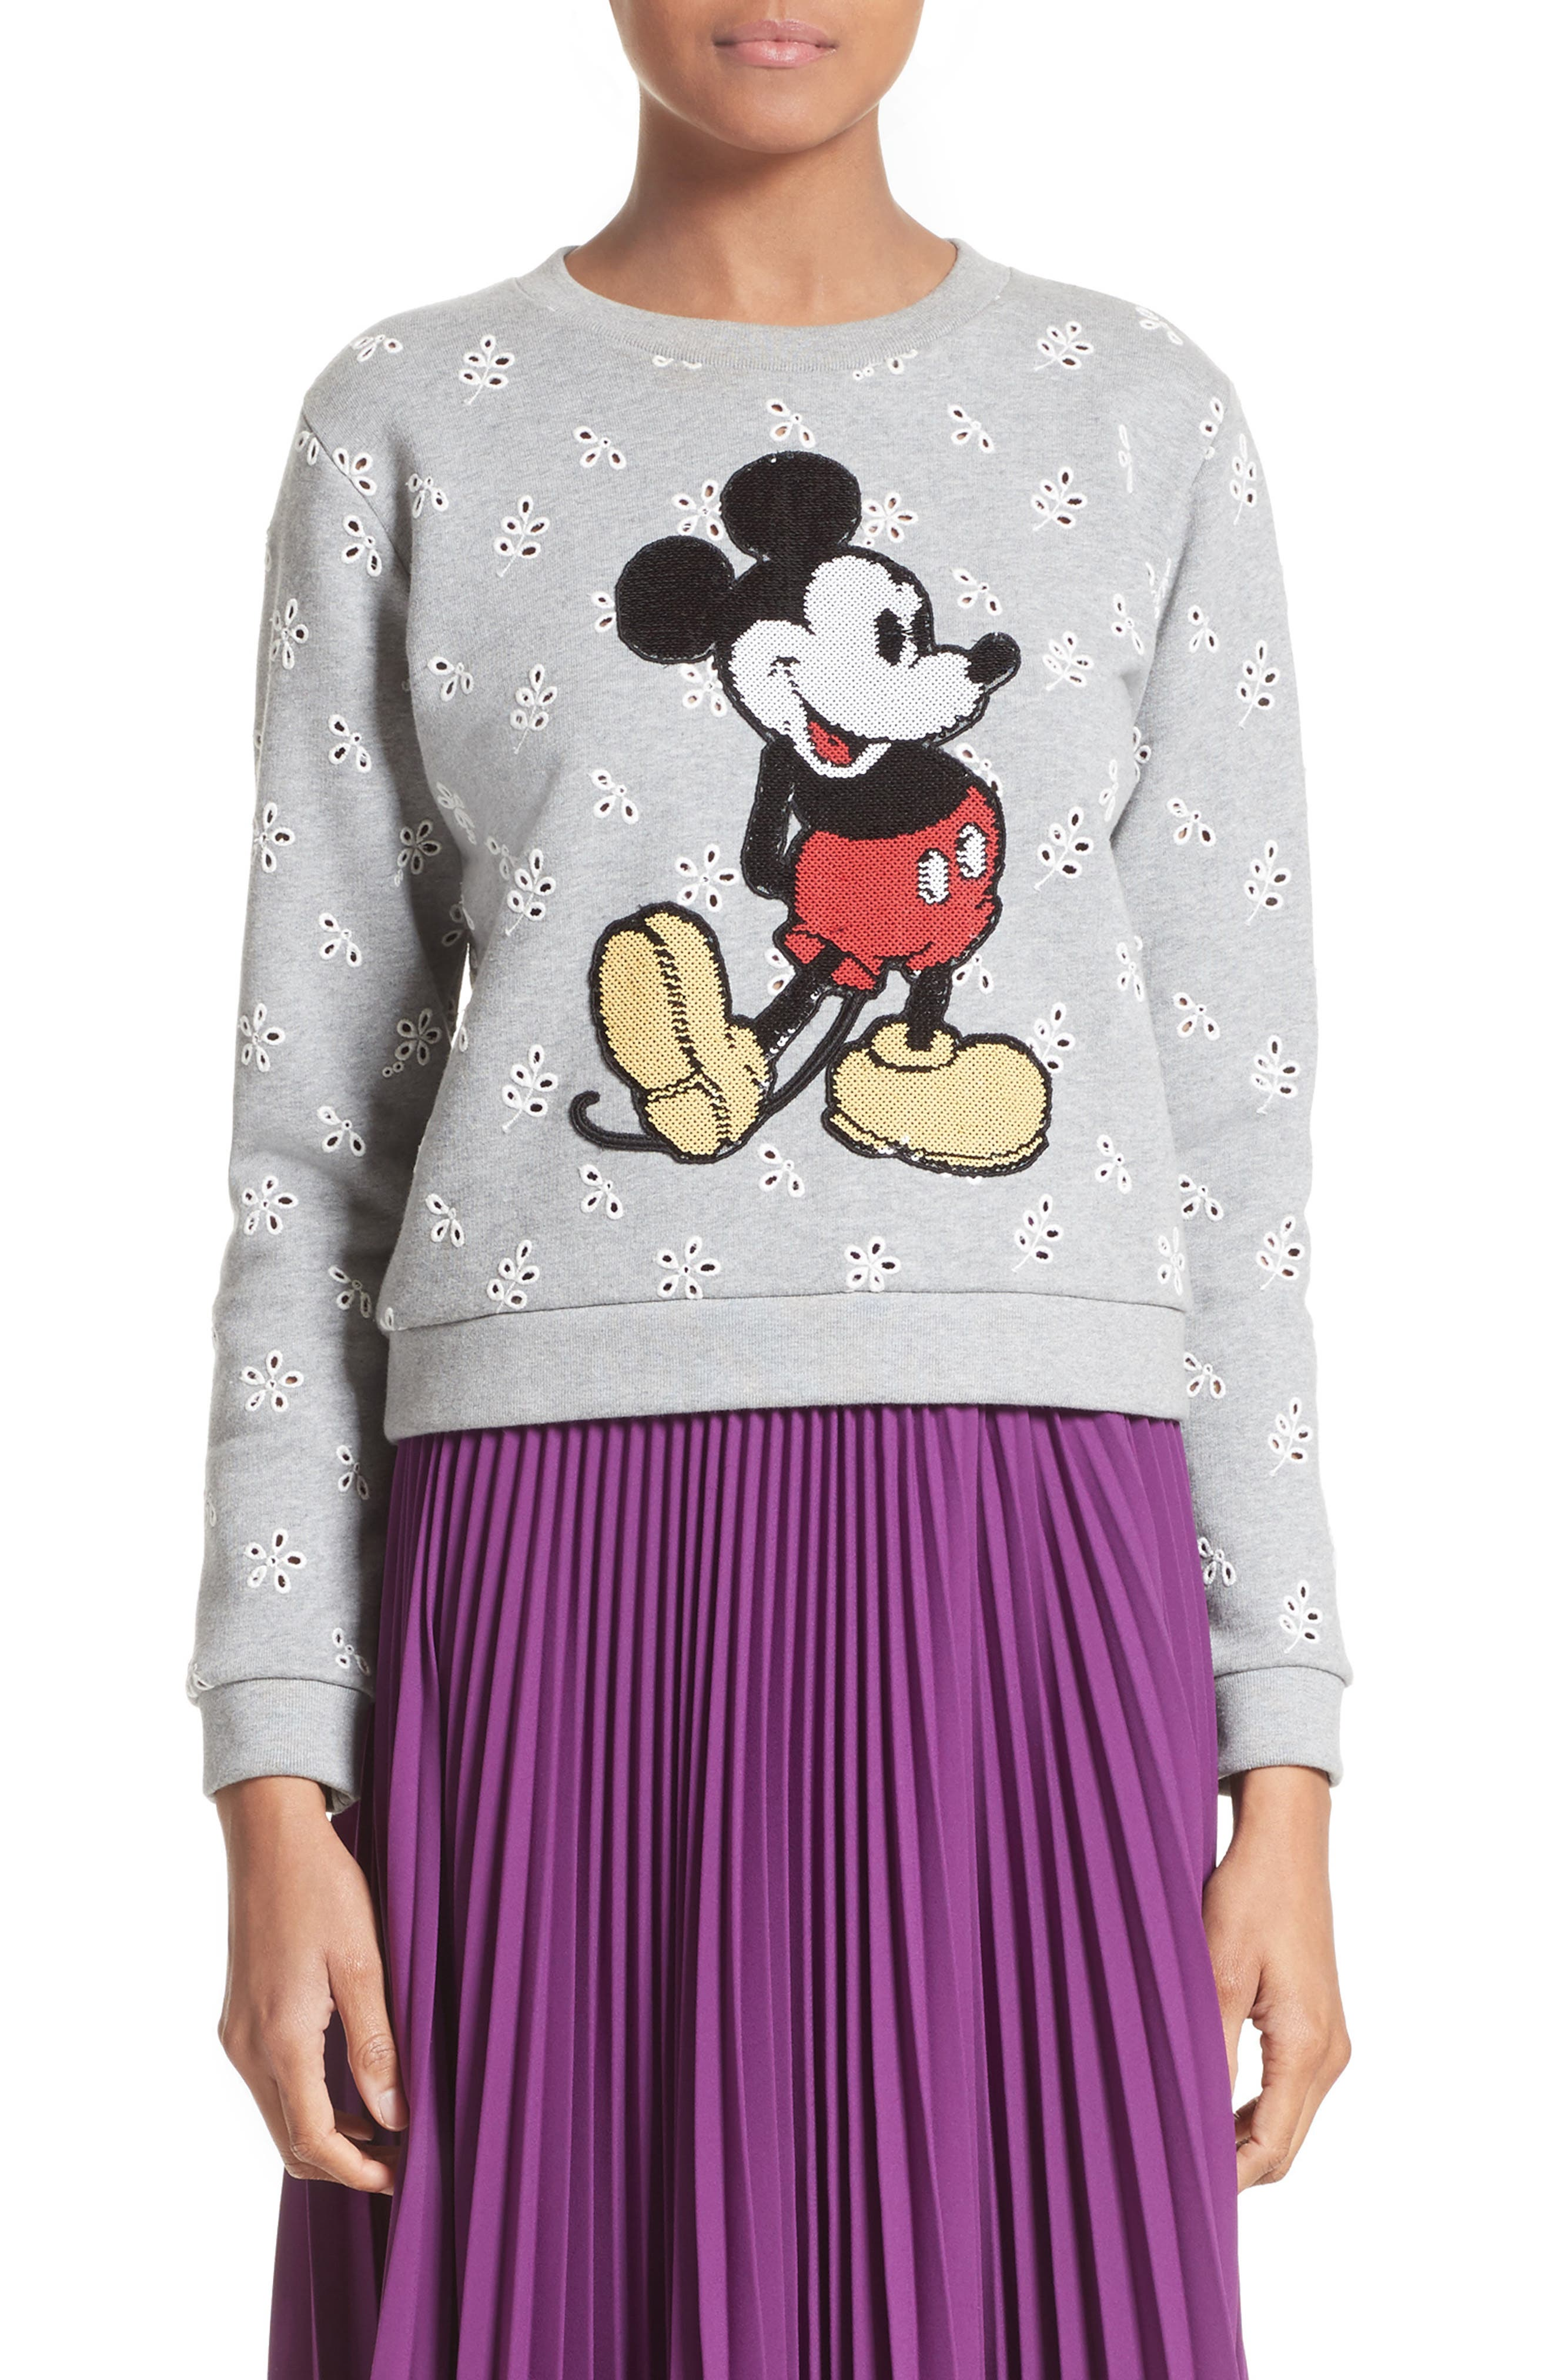 Main Image - MARC JACOBS Embellished Mickey Shrunken Sweatshirt